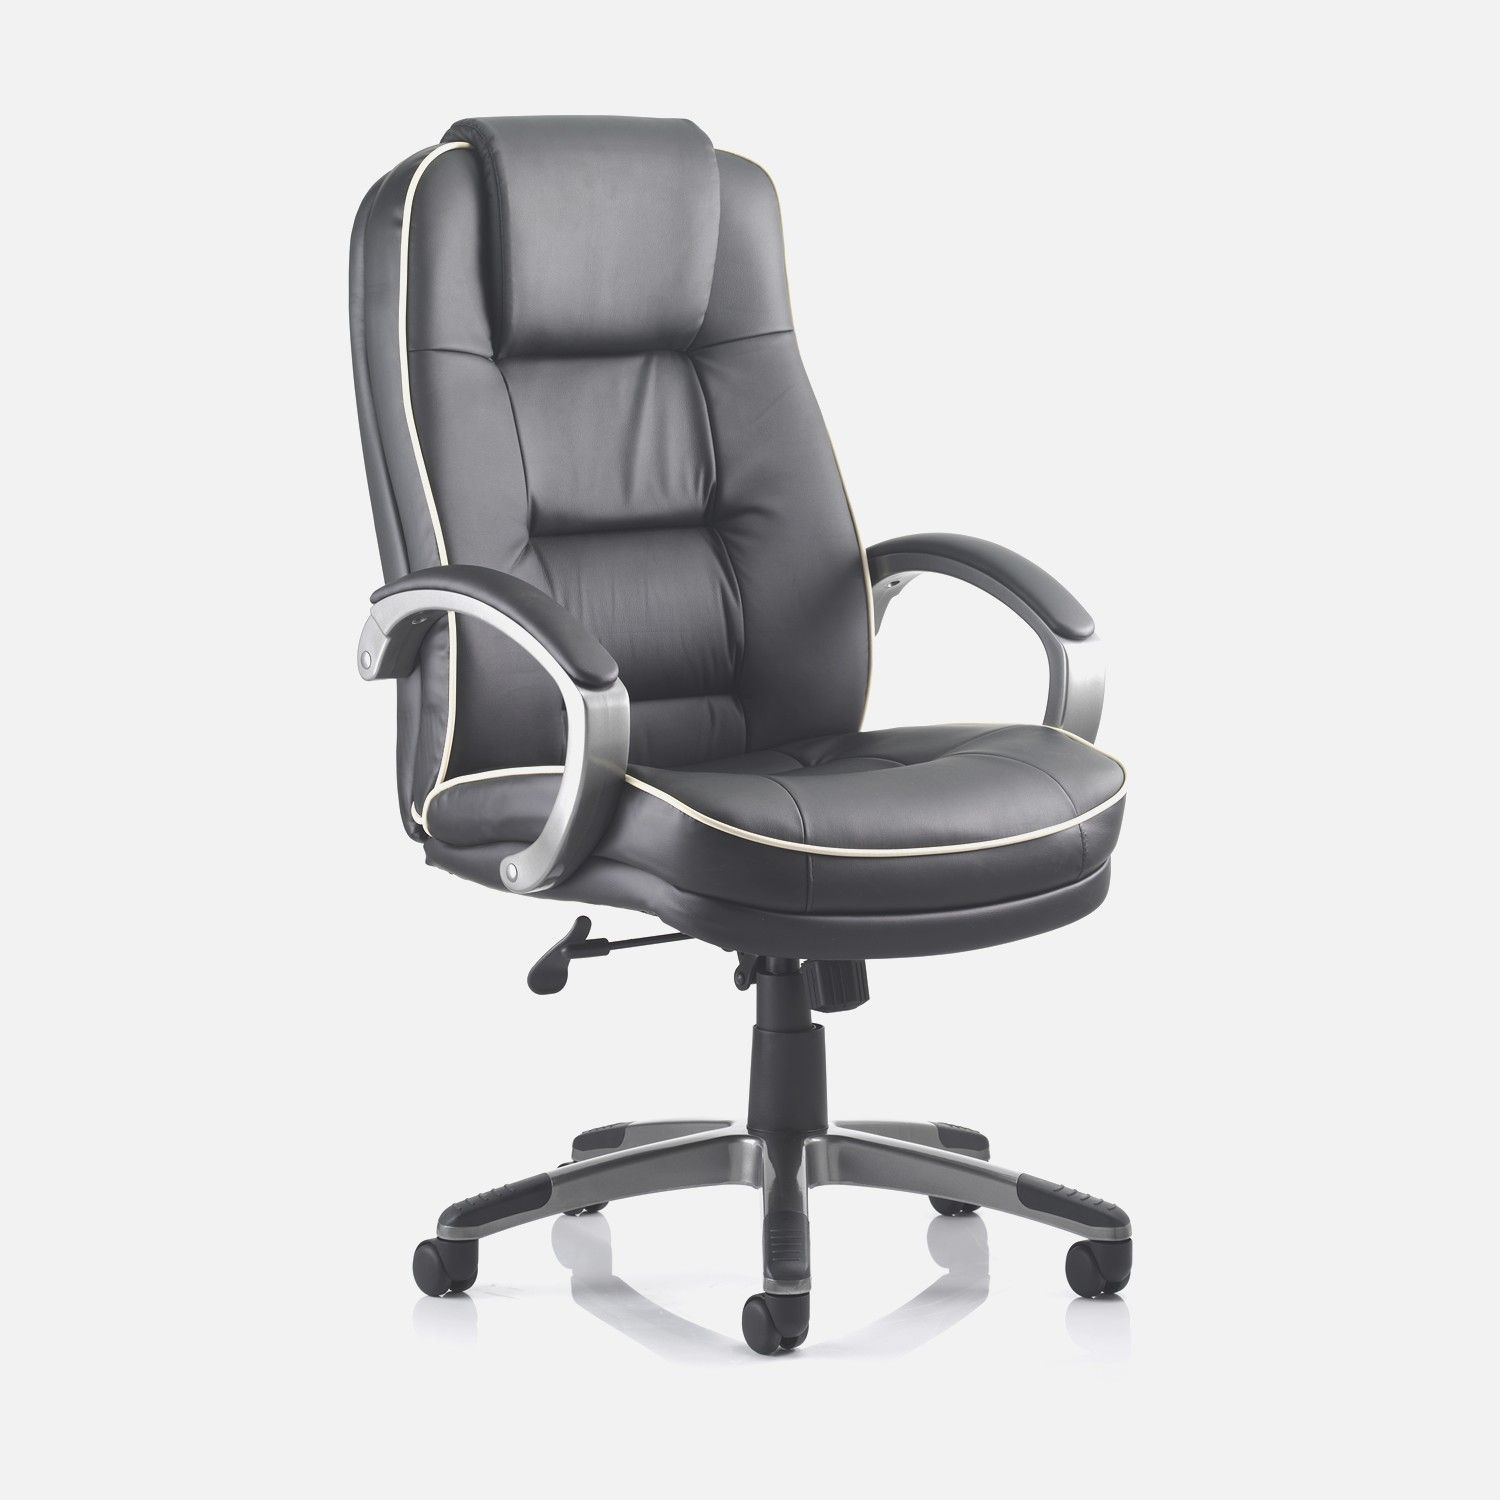 Chairs For Tall Man Best Chair Desk Furniture Lawn